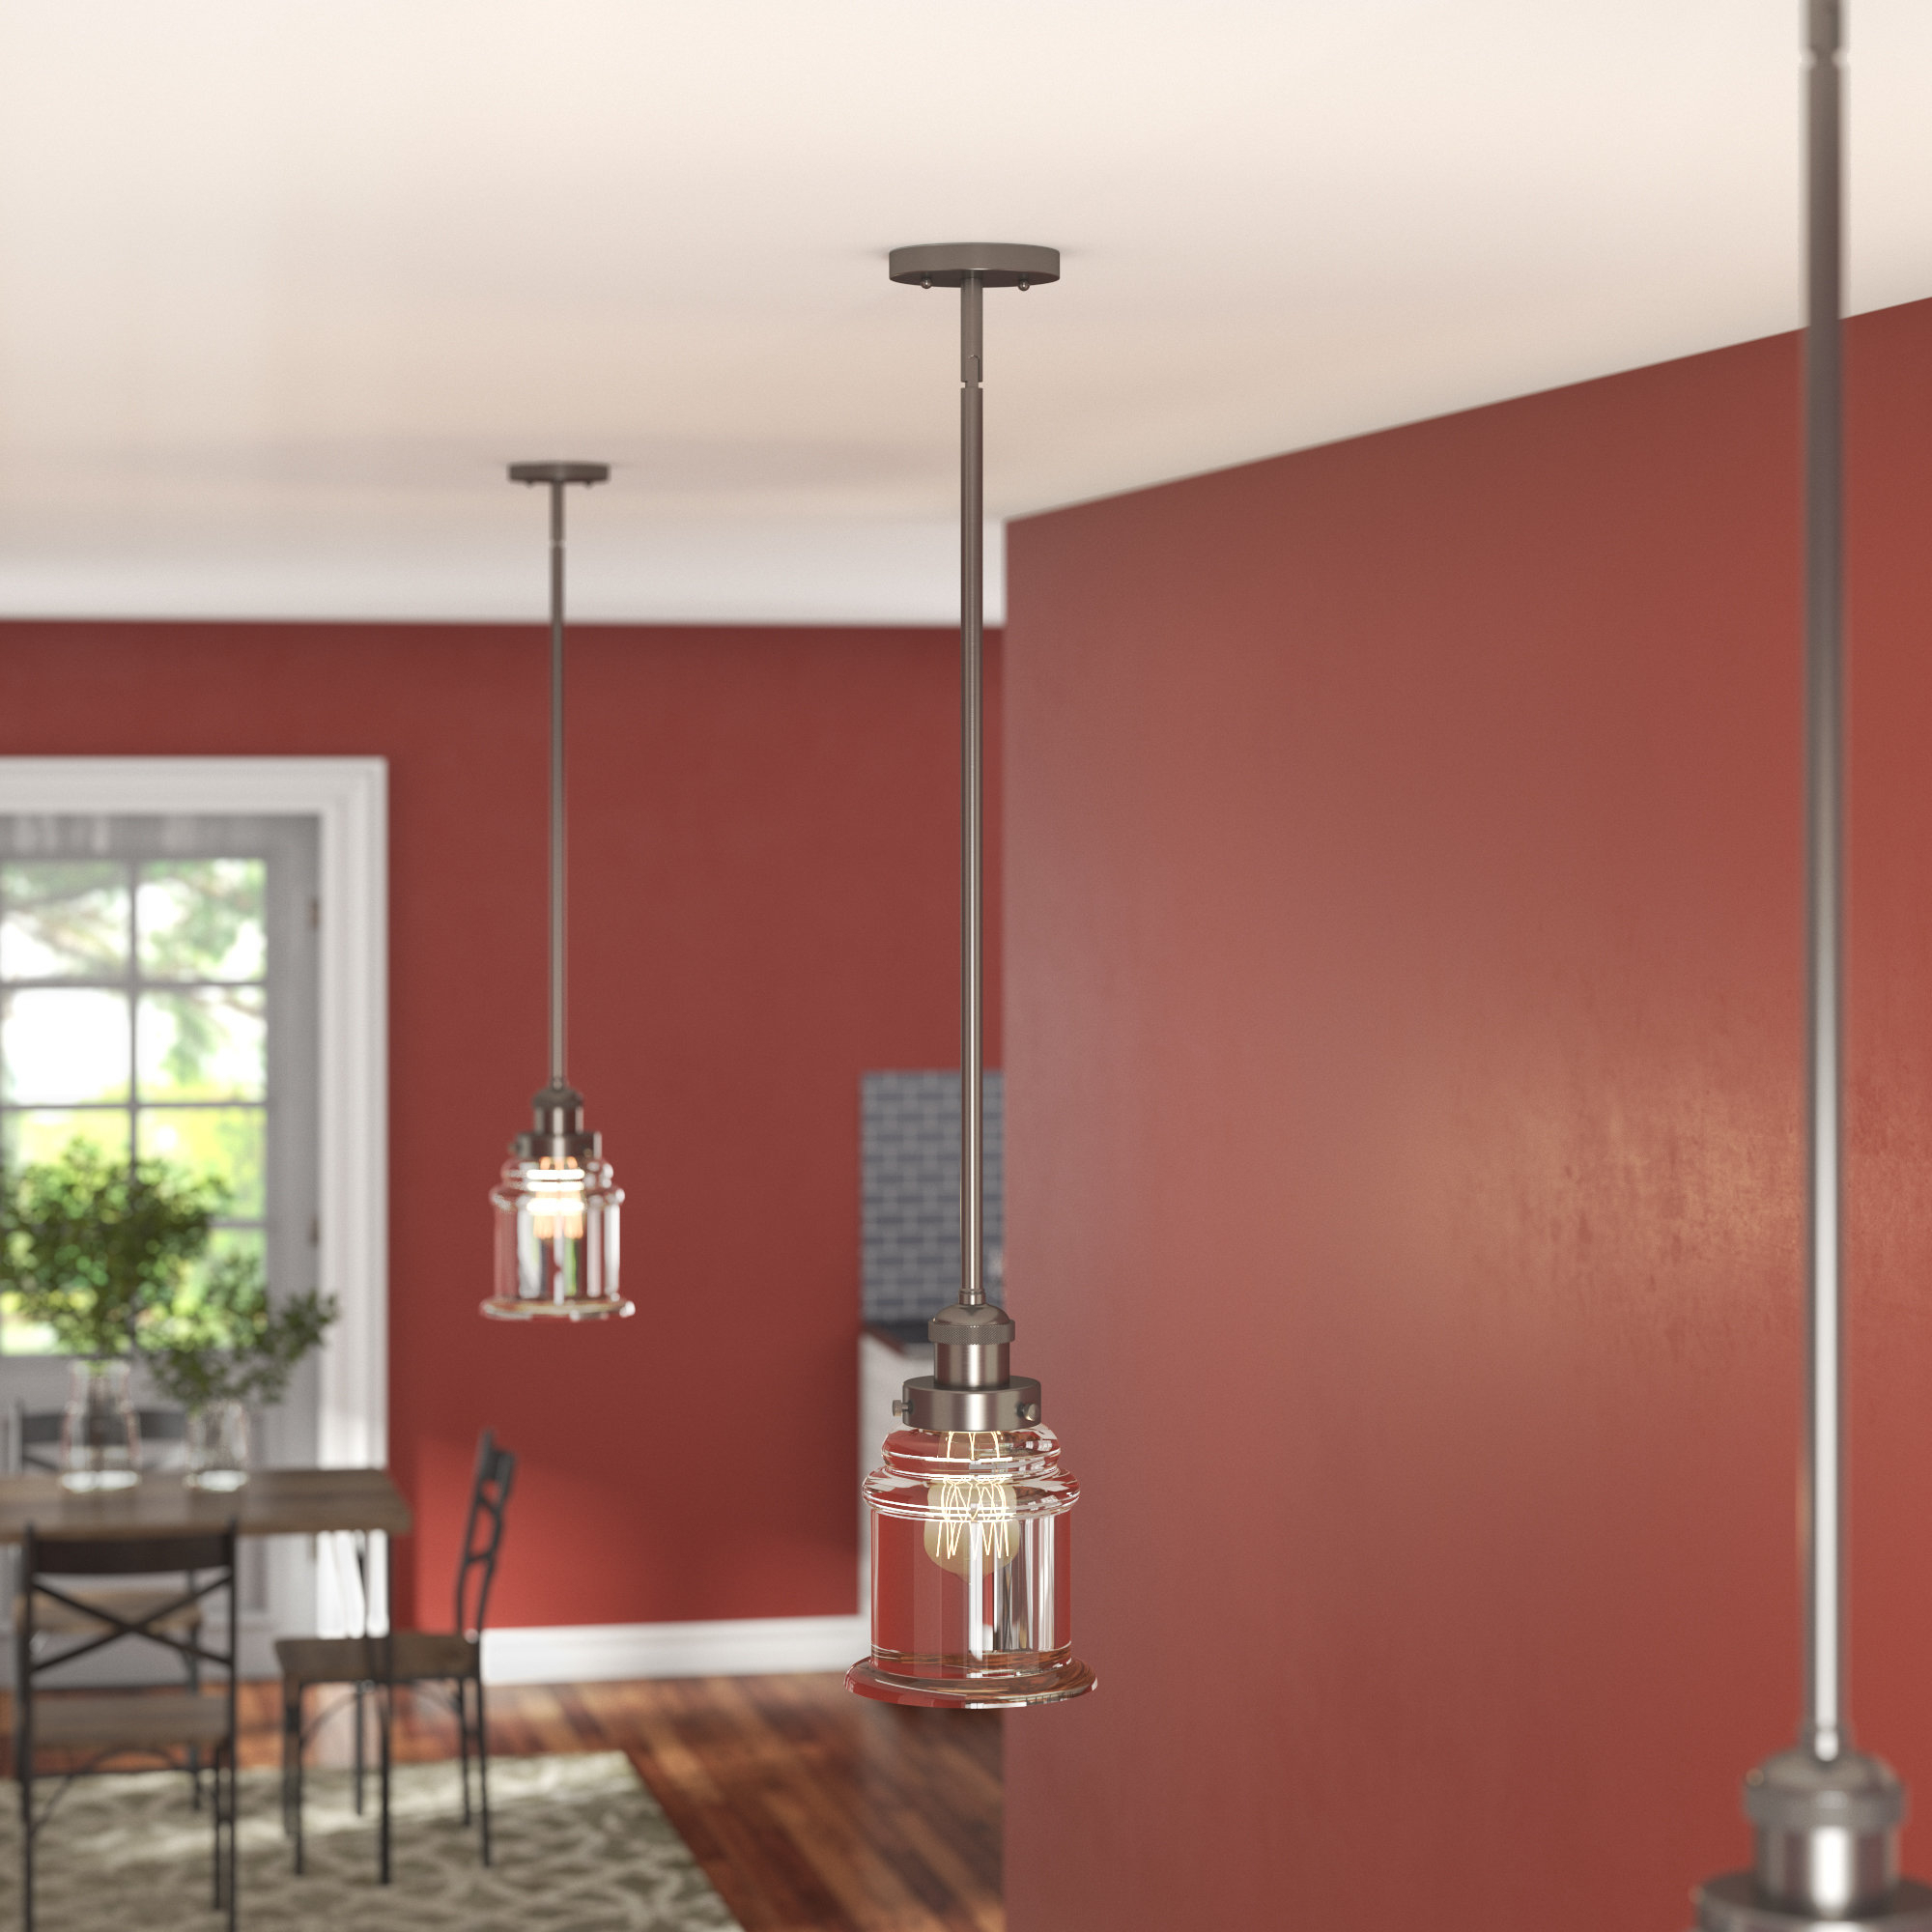 Bell Shaped Pendant Light You'll Love In 2019 | Wayfair With Regard To Erico 1 Light Single Bell Pendants (View 22 of 30)